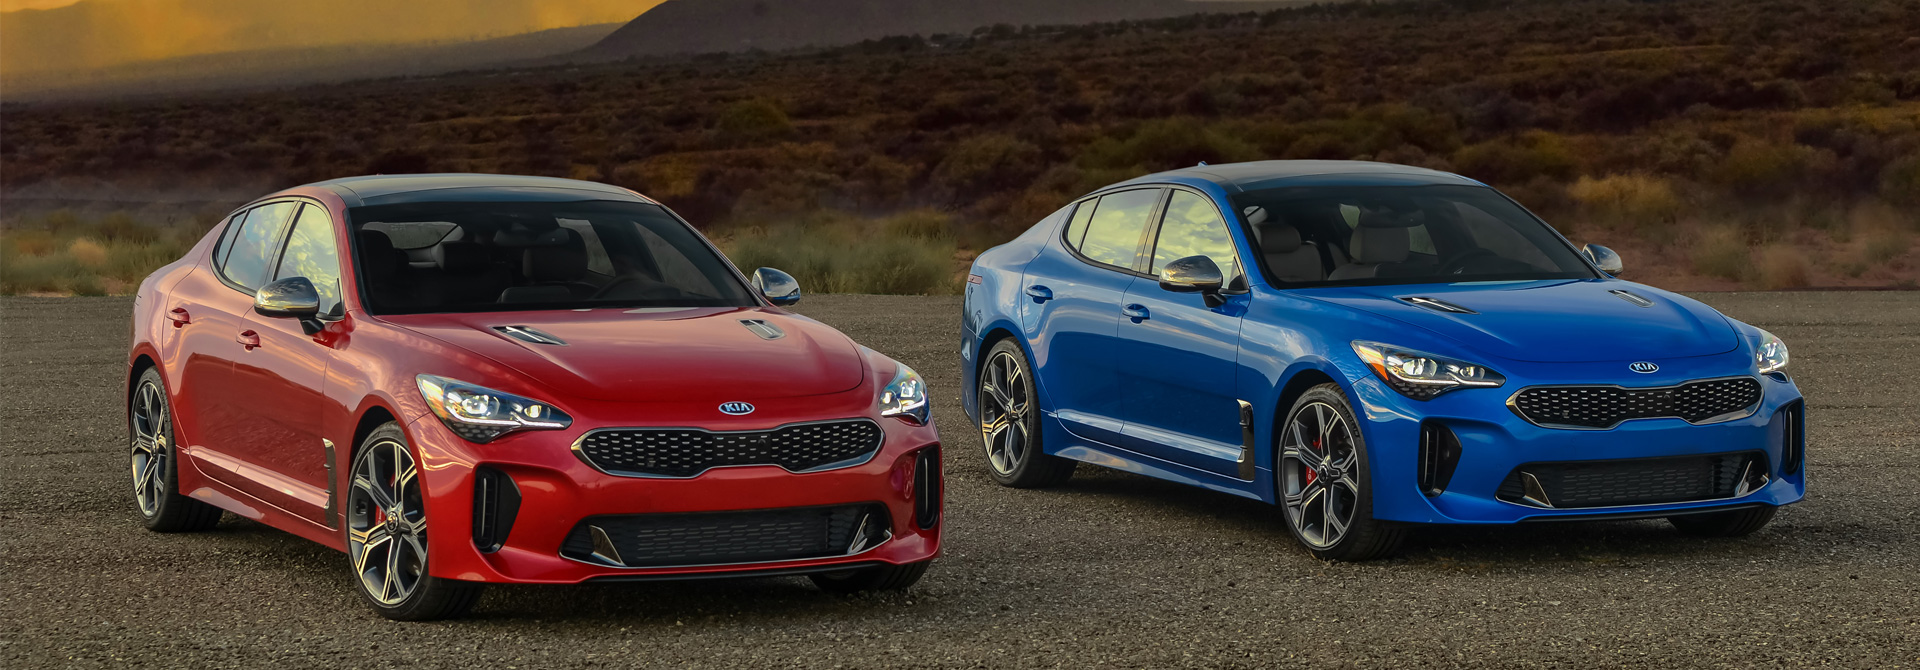 2018 Kia Stinger Gt Limited Awd W Red Interior For Sale In